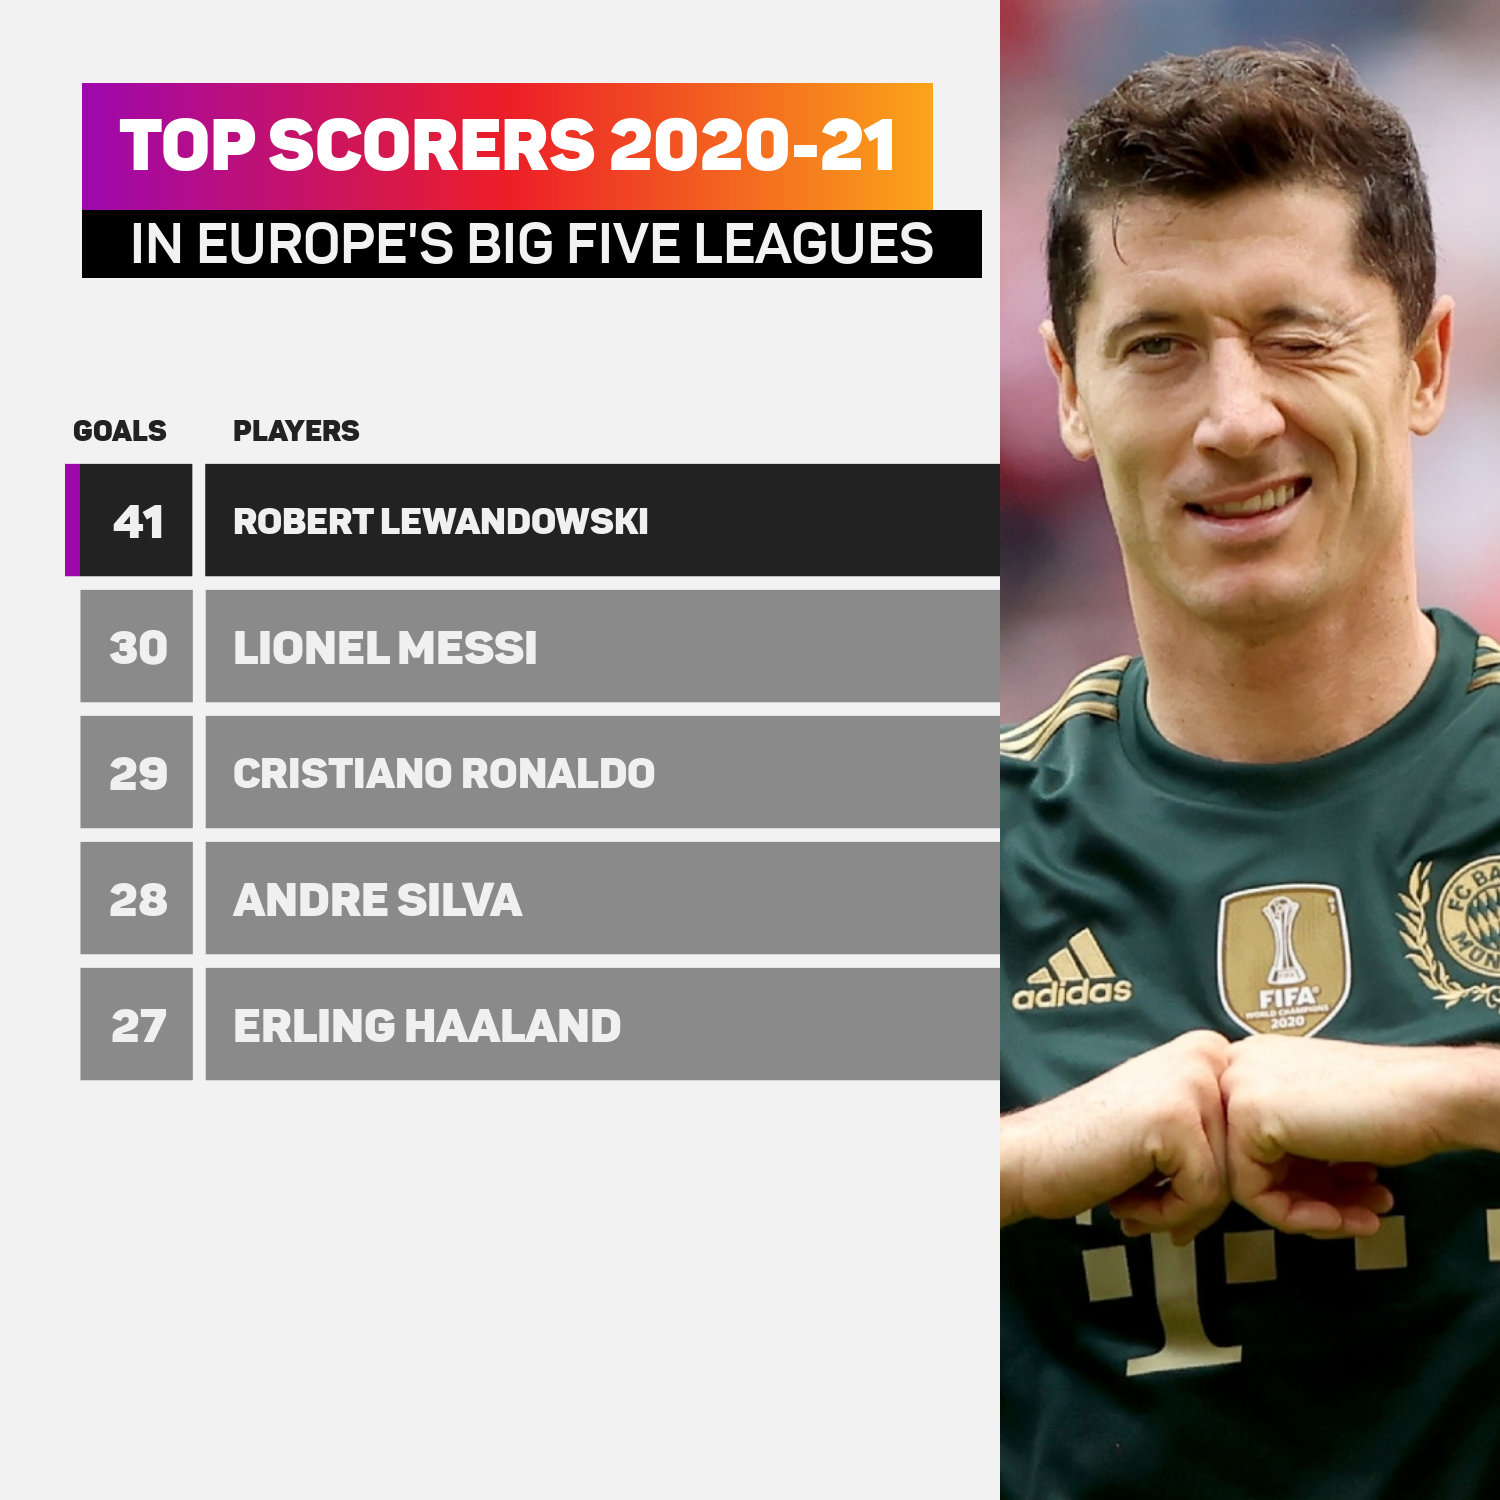 Robert Lewandowski outscored all of his rivals in 2020-21